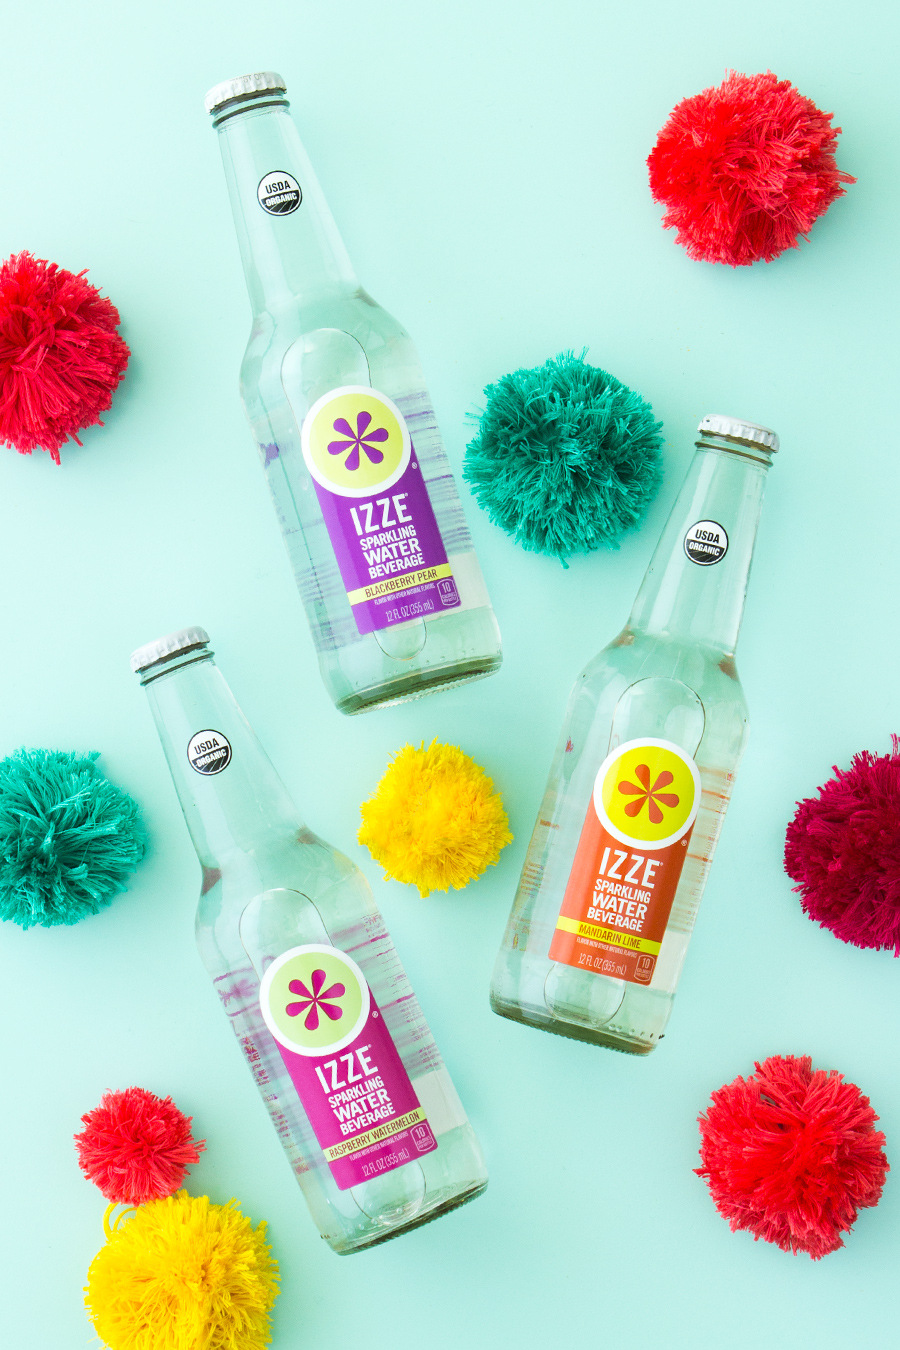 If you love all things bubbly than you gotta try the organic @IZZEOfficial sparkling water! It has true-to-the-fruit flavors and only 10 calories per bottle.